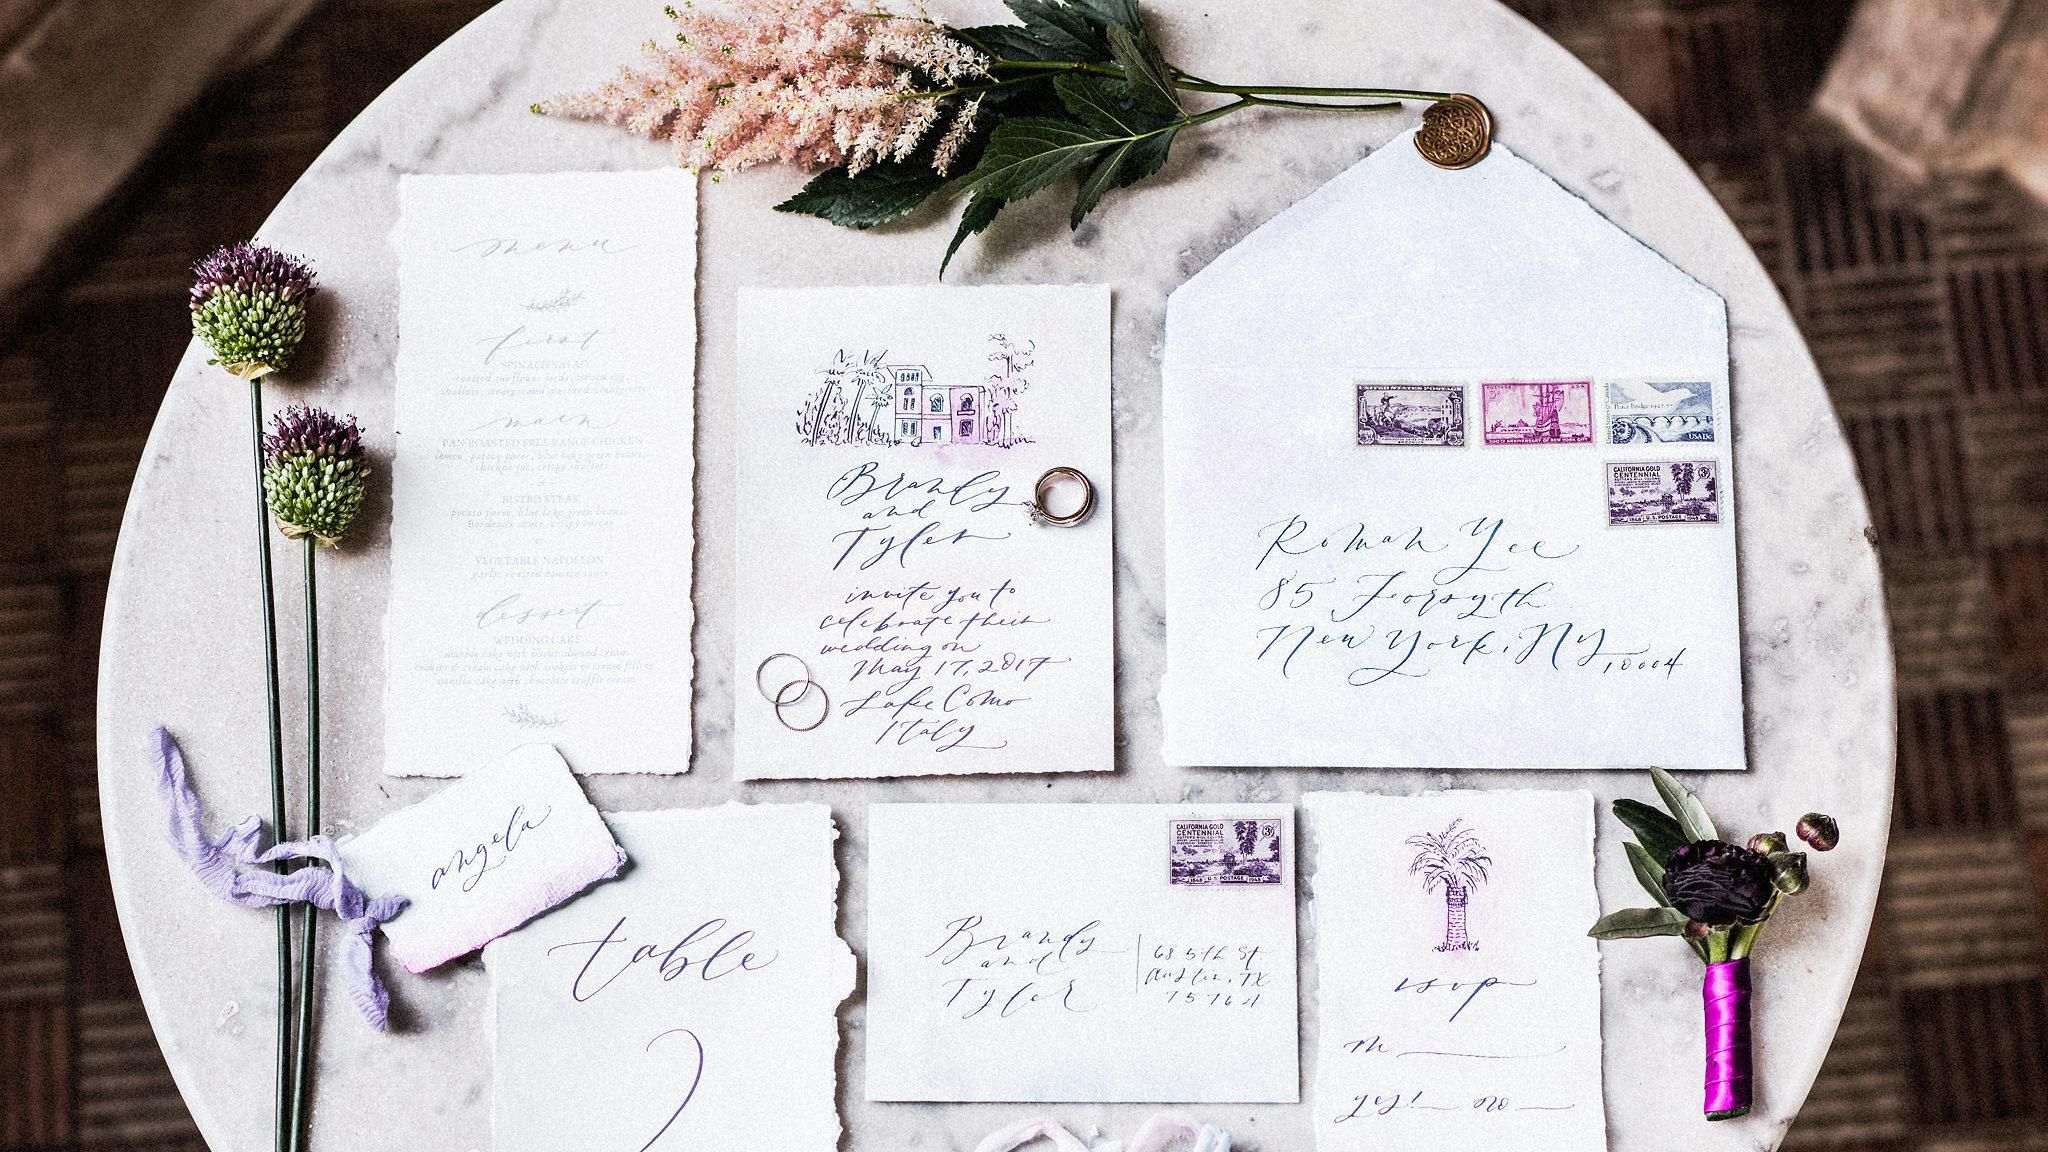 10 Amazing Wedding Invitations Websites To Create Your Own Design